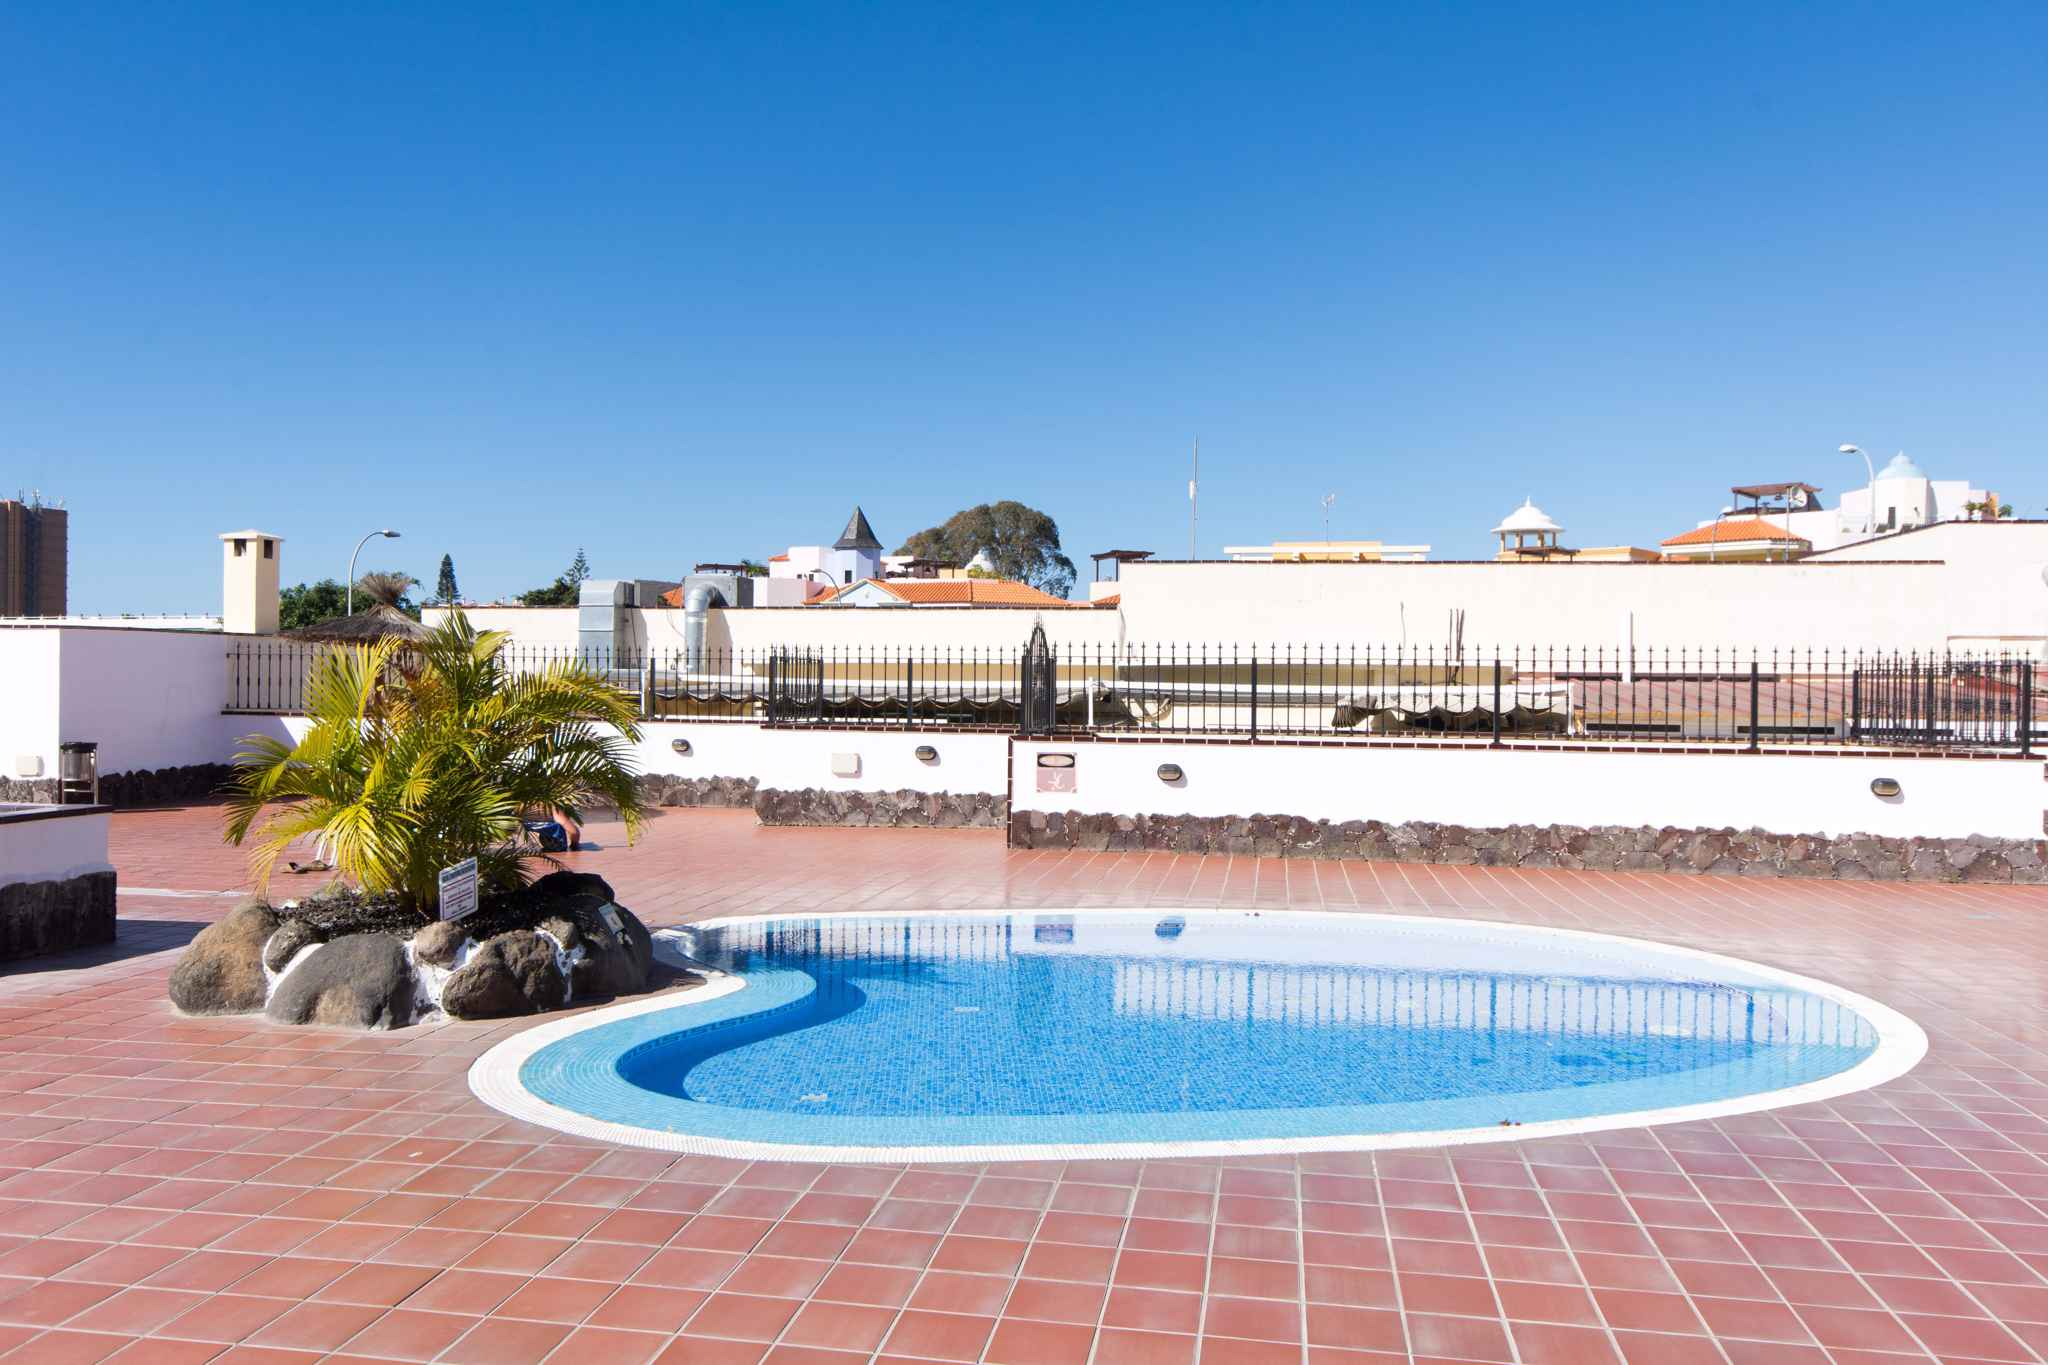 Holiday apartment mit Pool in Ferienanlage (2382979), Los Cristianos, Tenerife, Canary Islands, Spain, picture 6